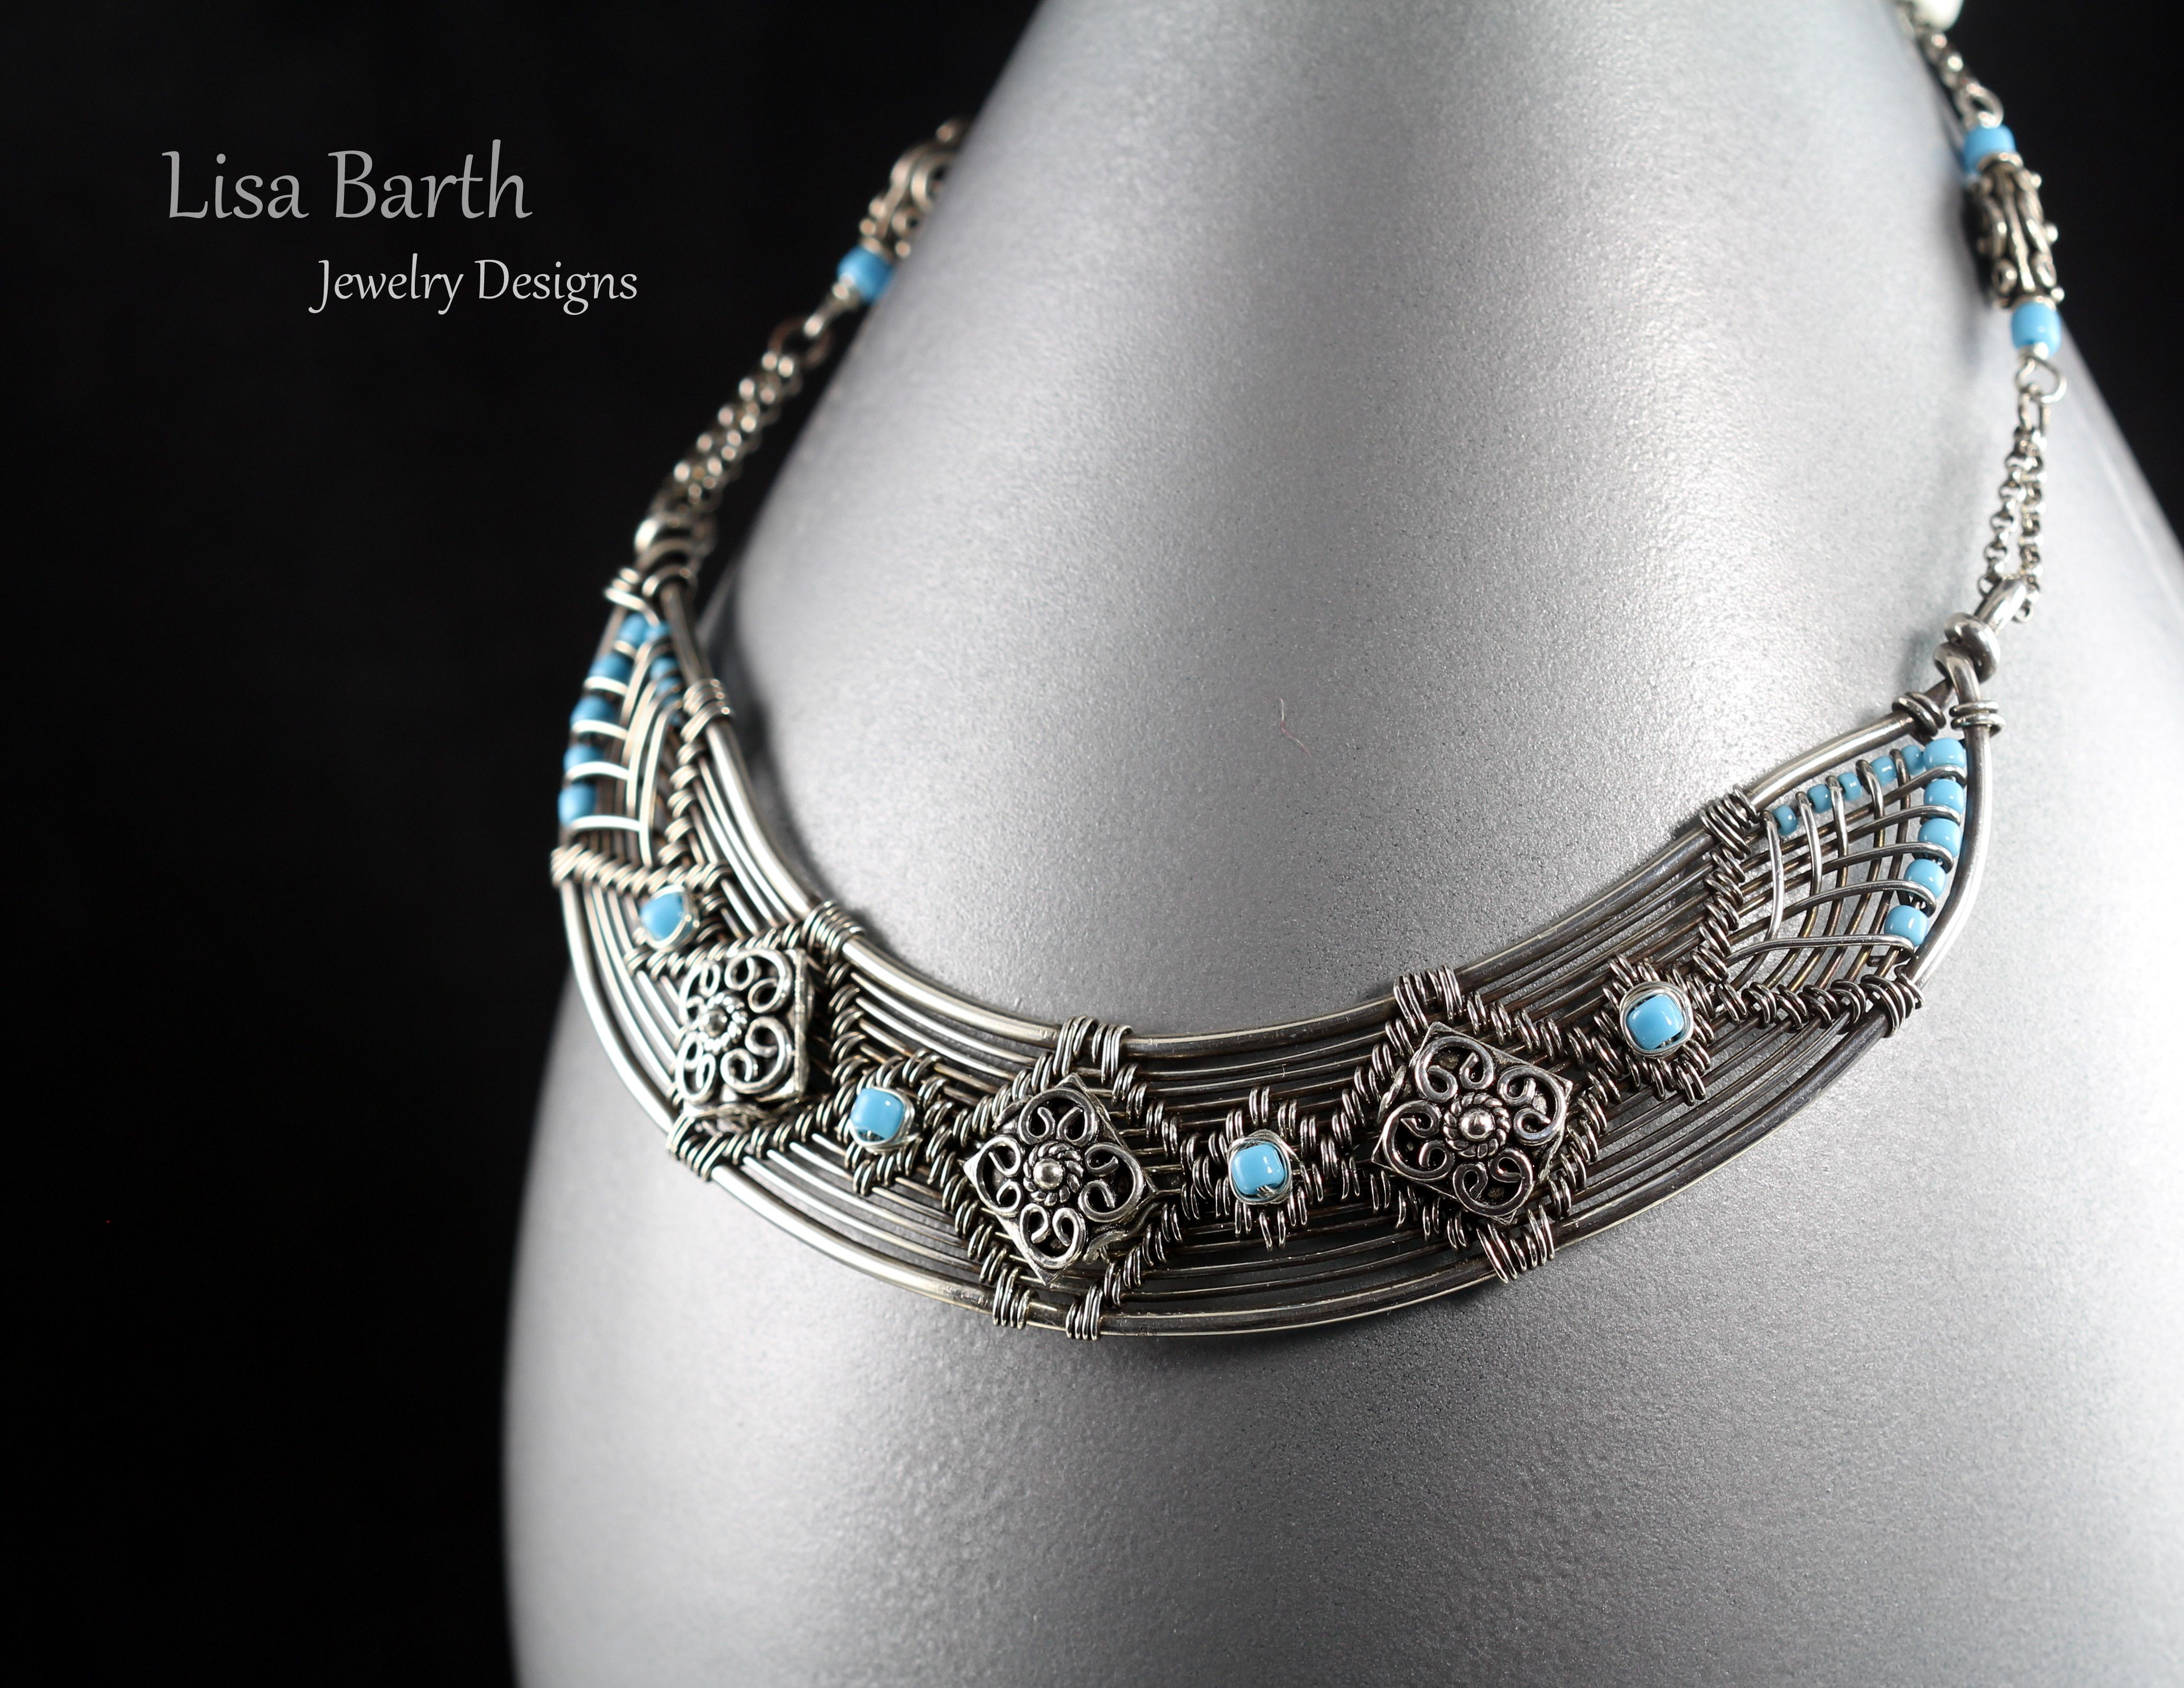 I worked on this one all weekend. With this necklace, I adapted a bracelet design so it could be a bit more versatile and worn around your neck. What the heck, why not? It is all sterling silver with some turquoise seed beads. https://www.etsy.com/shop/LisaBarthJewelry?ref=hdr_shop_menu